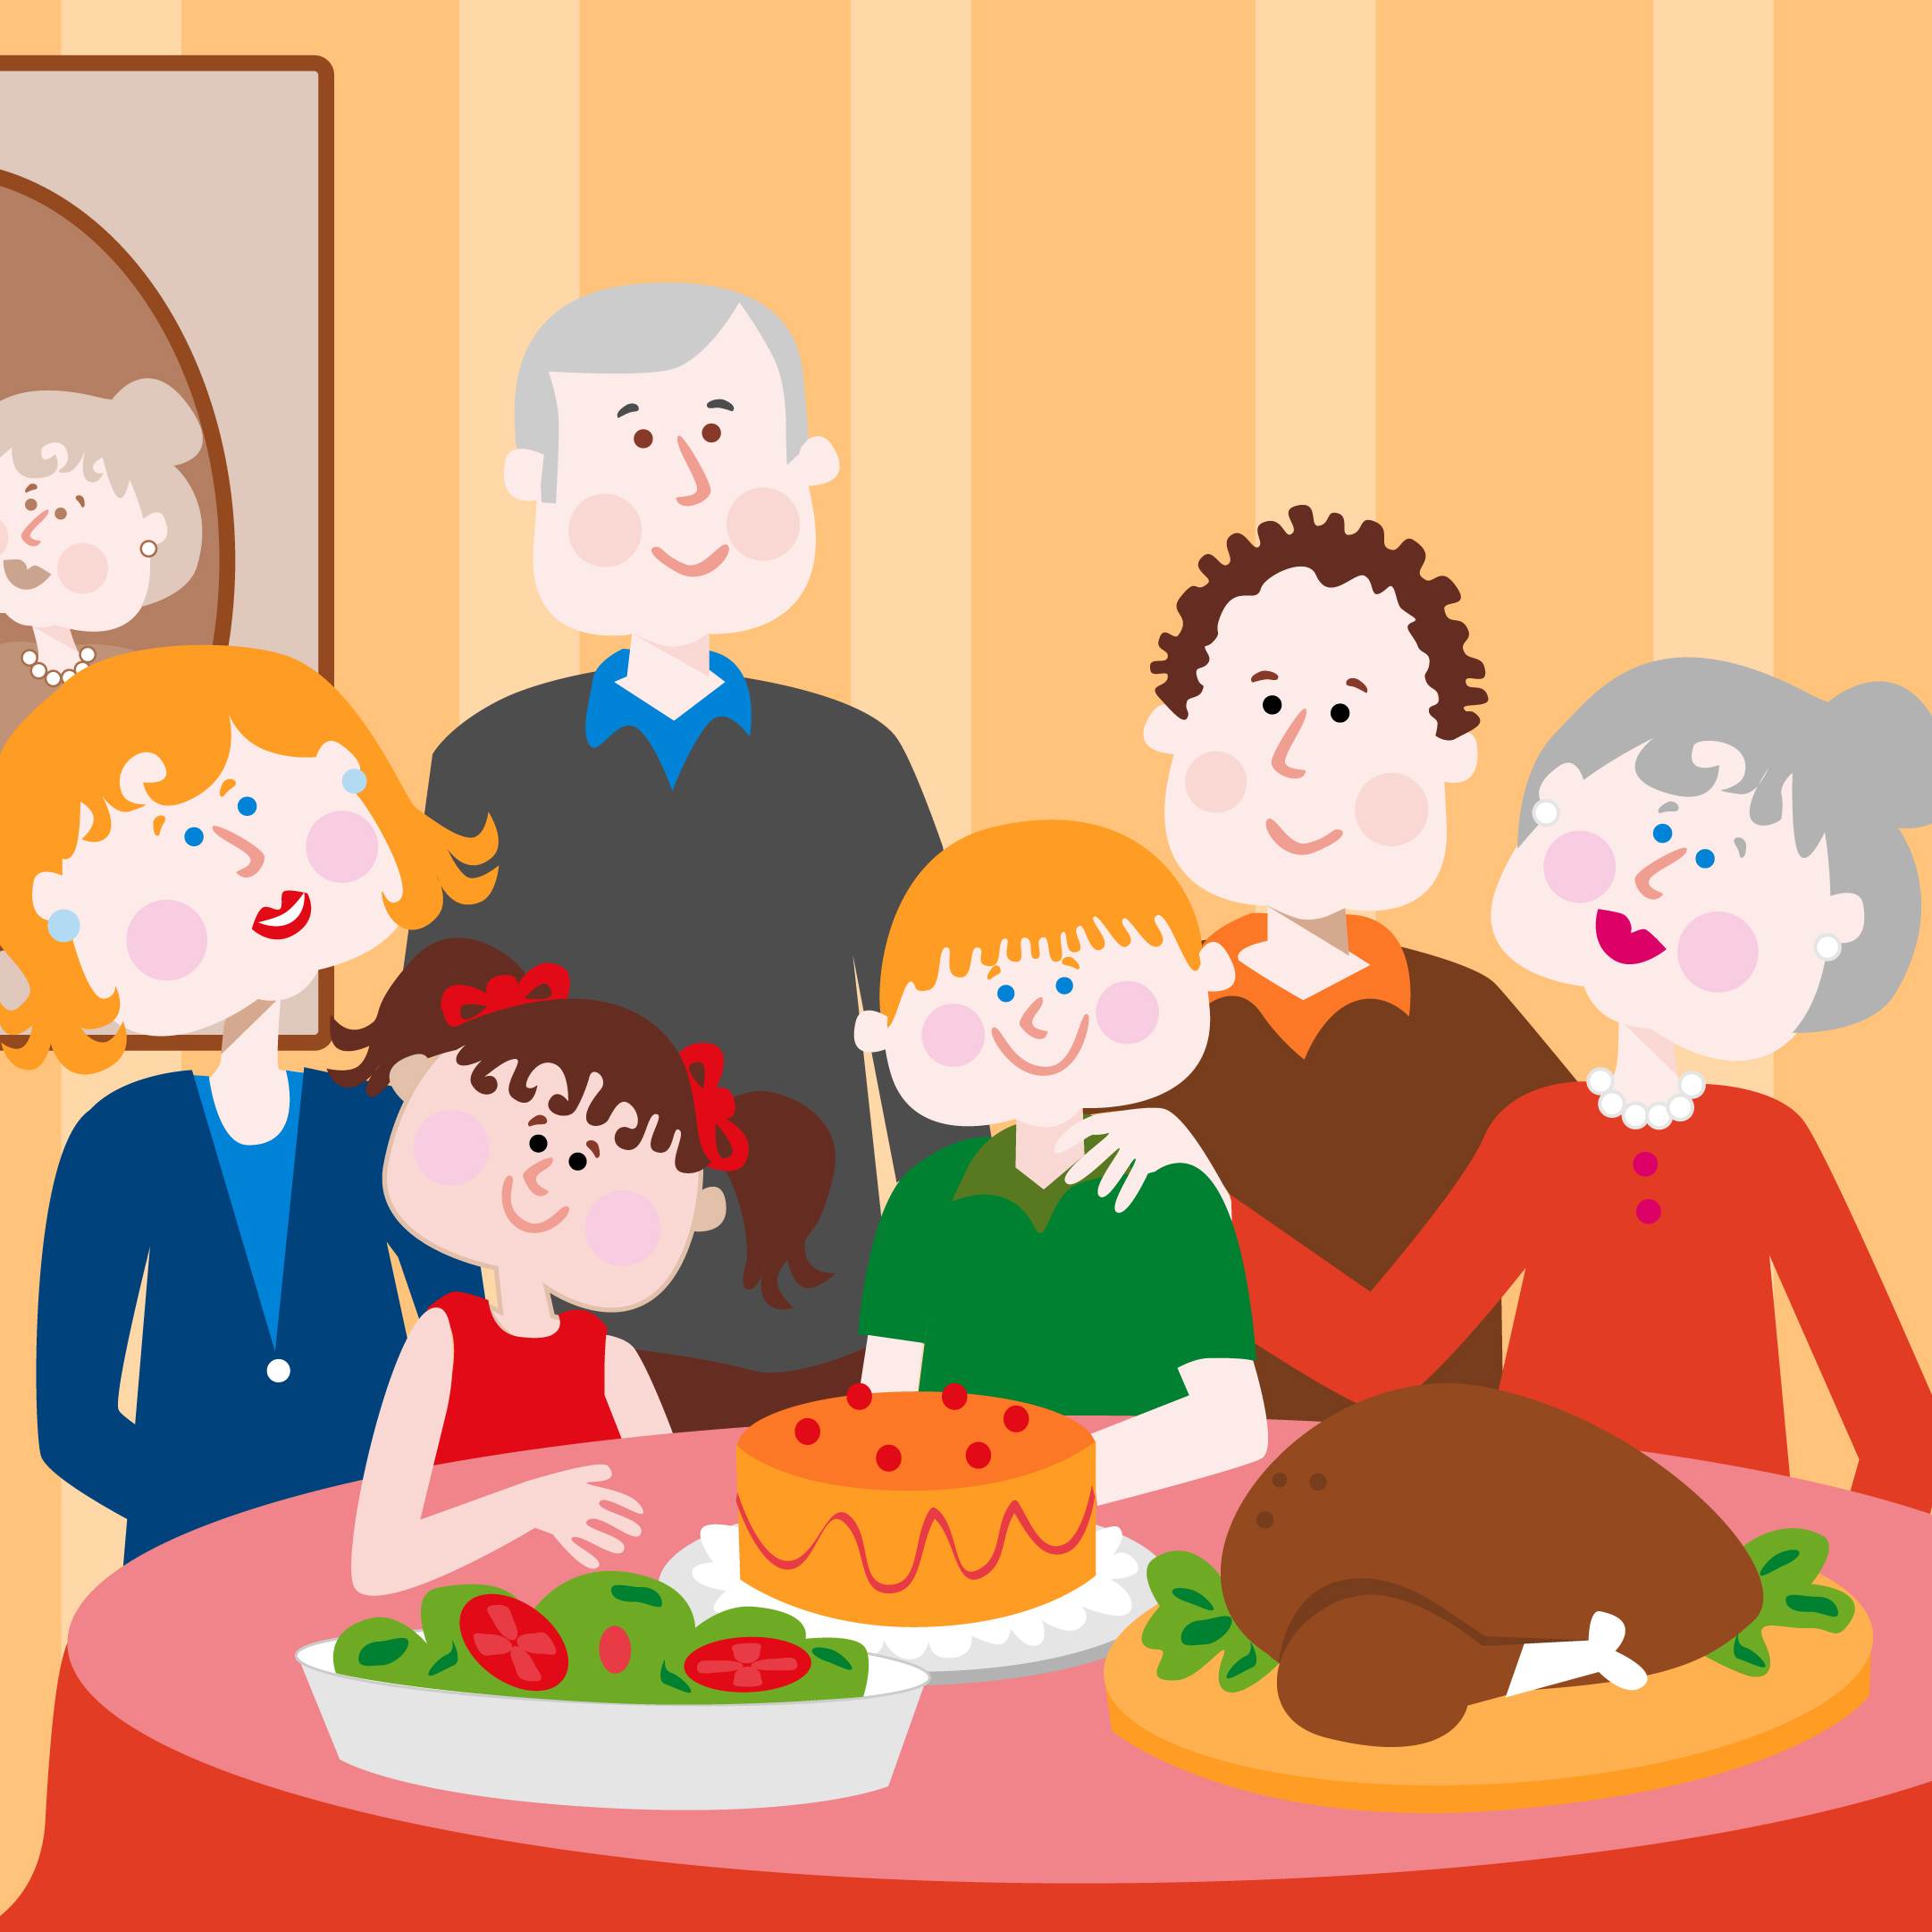 Family gatherings give an opportunity to talk about what kind of medical care relatives want if they're frail or very sick.